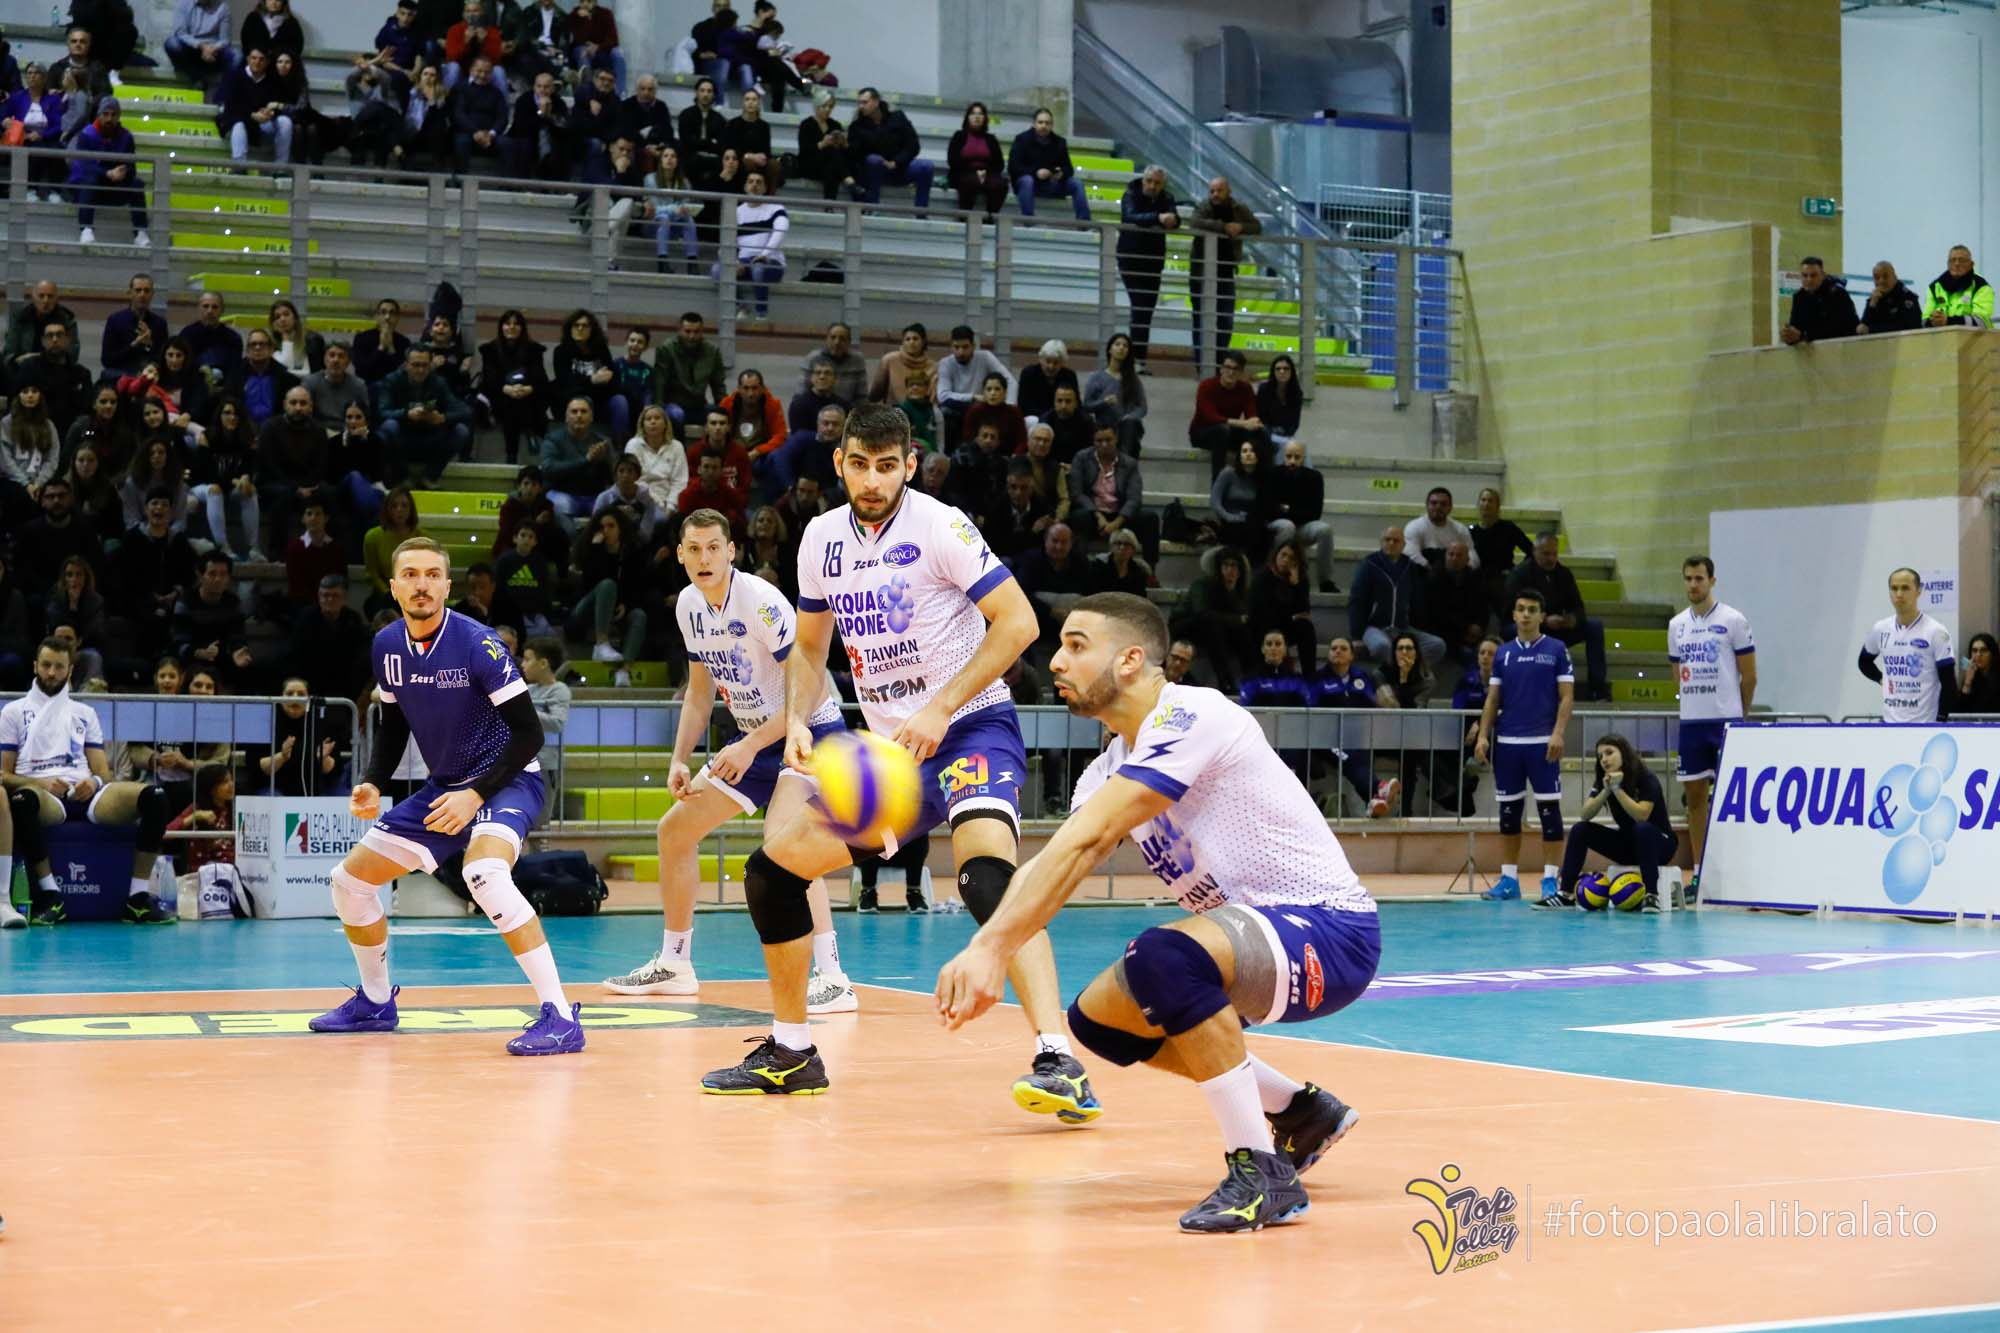 volleypack-focus-sur-swan-ngapeth-2019-11